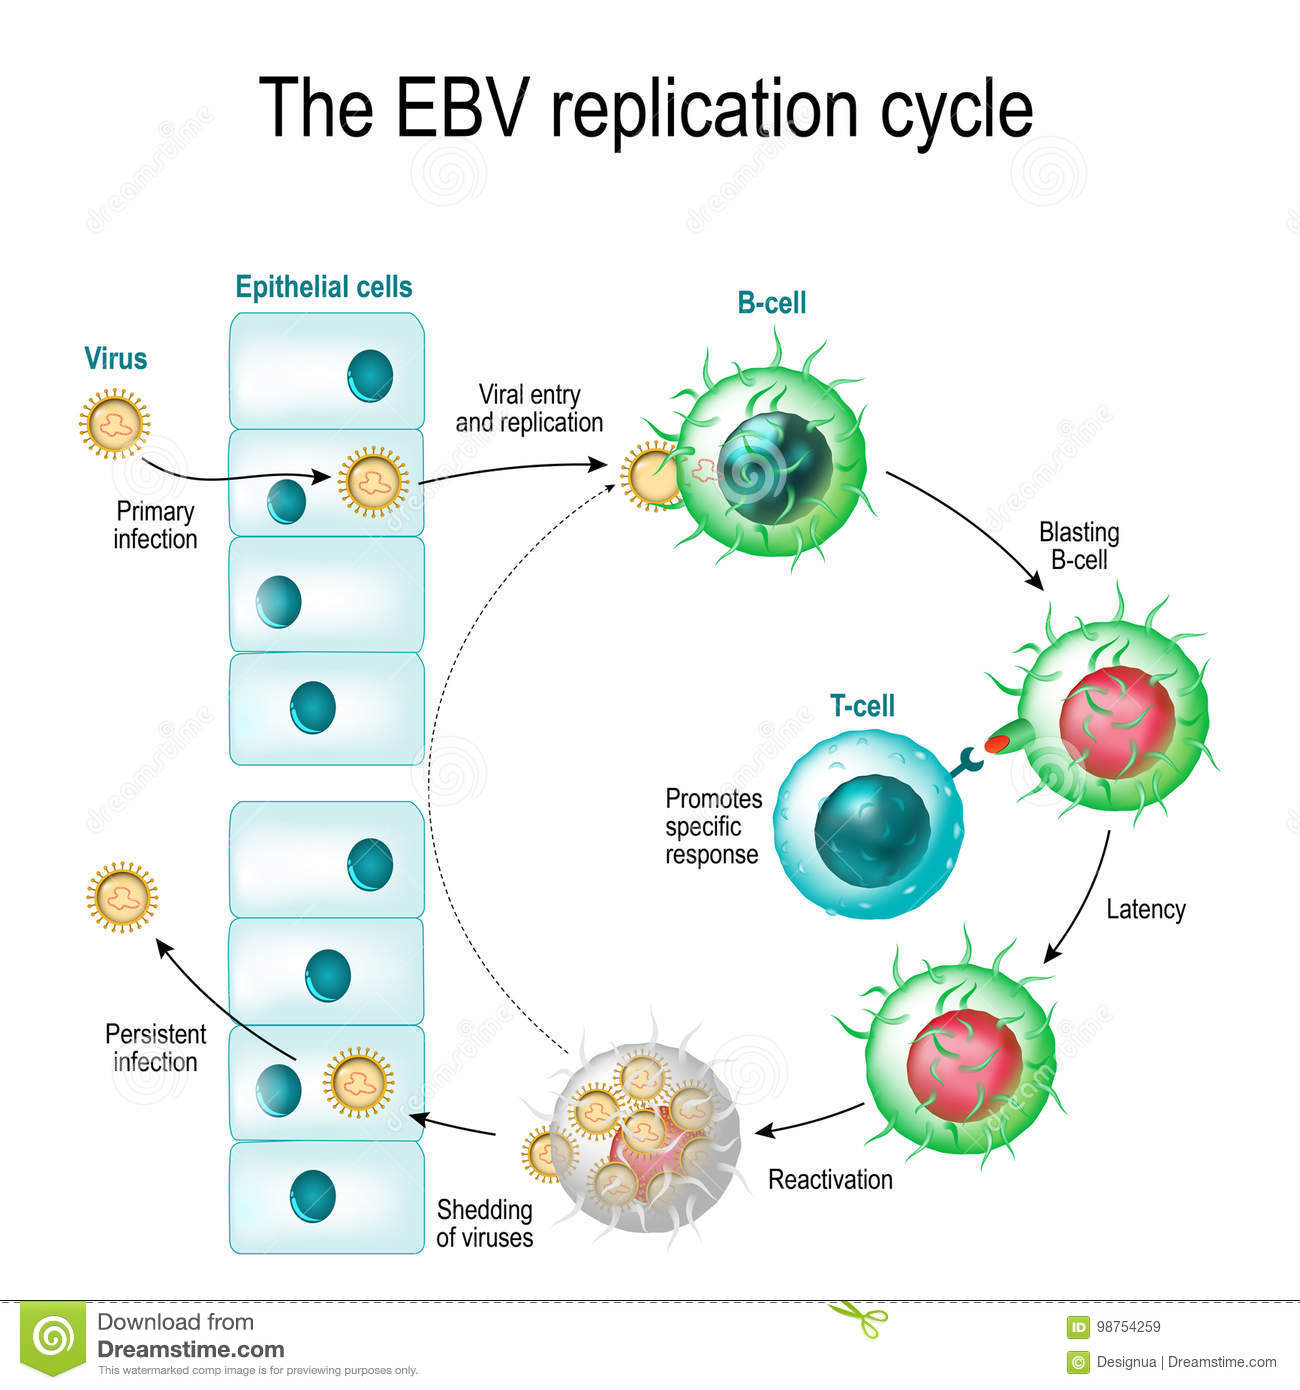 Le cycle de reproduction de virus d Epstein-Barr